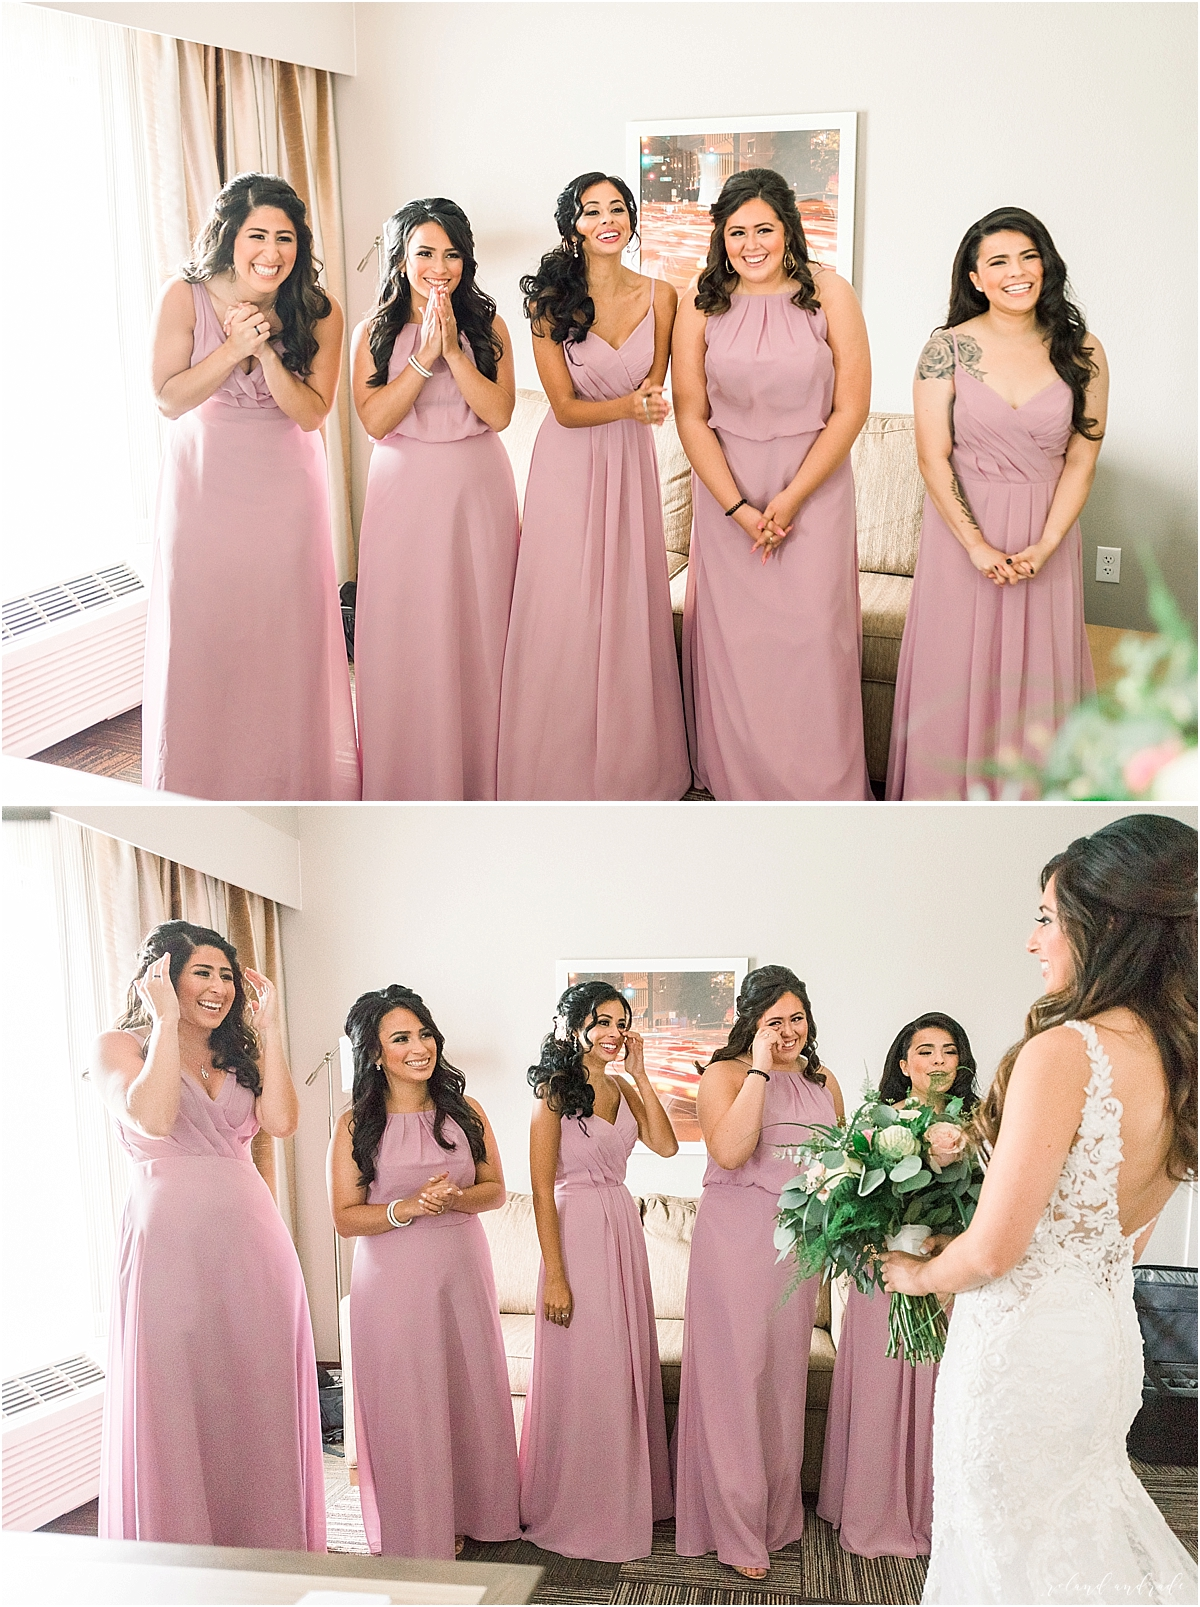 Tuscany Falls Wedding + Light and Airy Wedding Photographer Chicago, Mokena Wedding Photographer + Chicago Latino Photography + Naperville Wedding Photographer + Chicago Engagement Photographer + Best Photographer In Chicago_0027.jpg